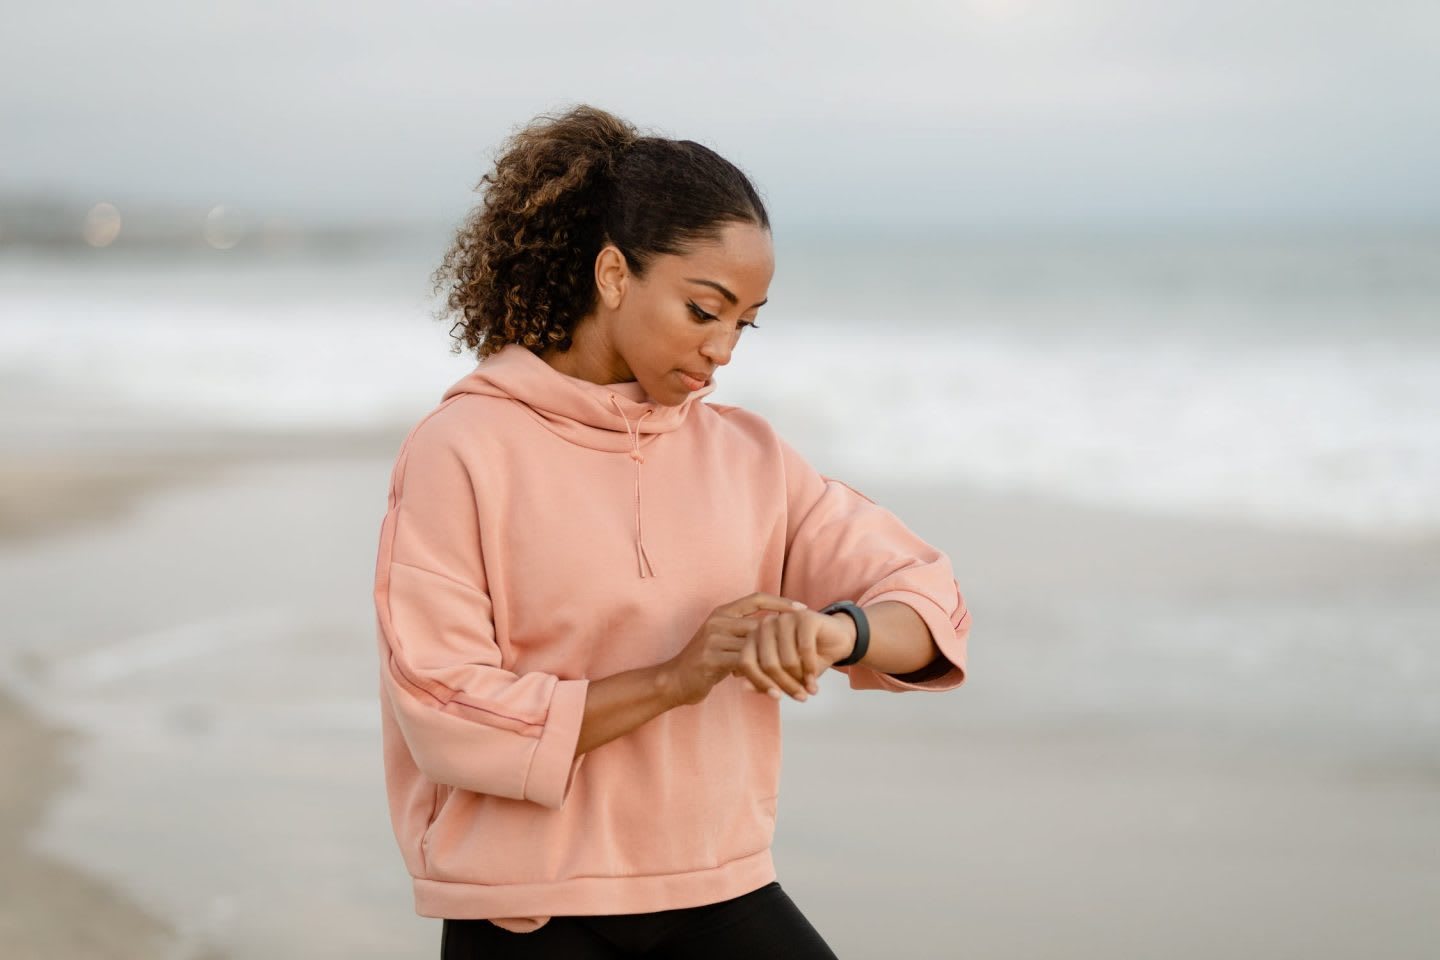 Woman wearing light pink hoodie checking her watch at the beach, outdoors, beach, seaside, woman, girl